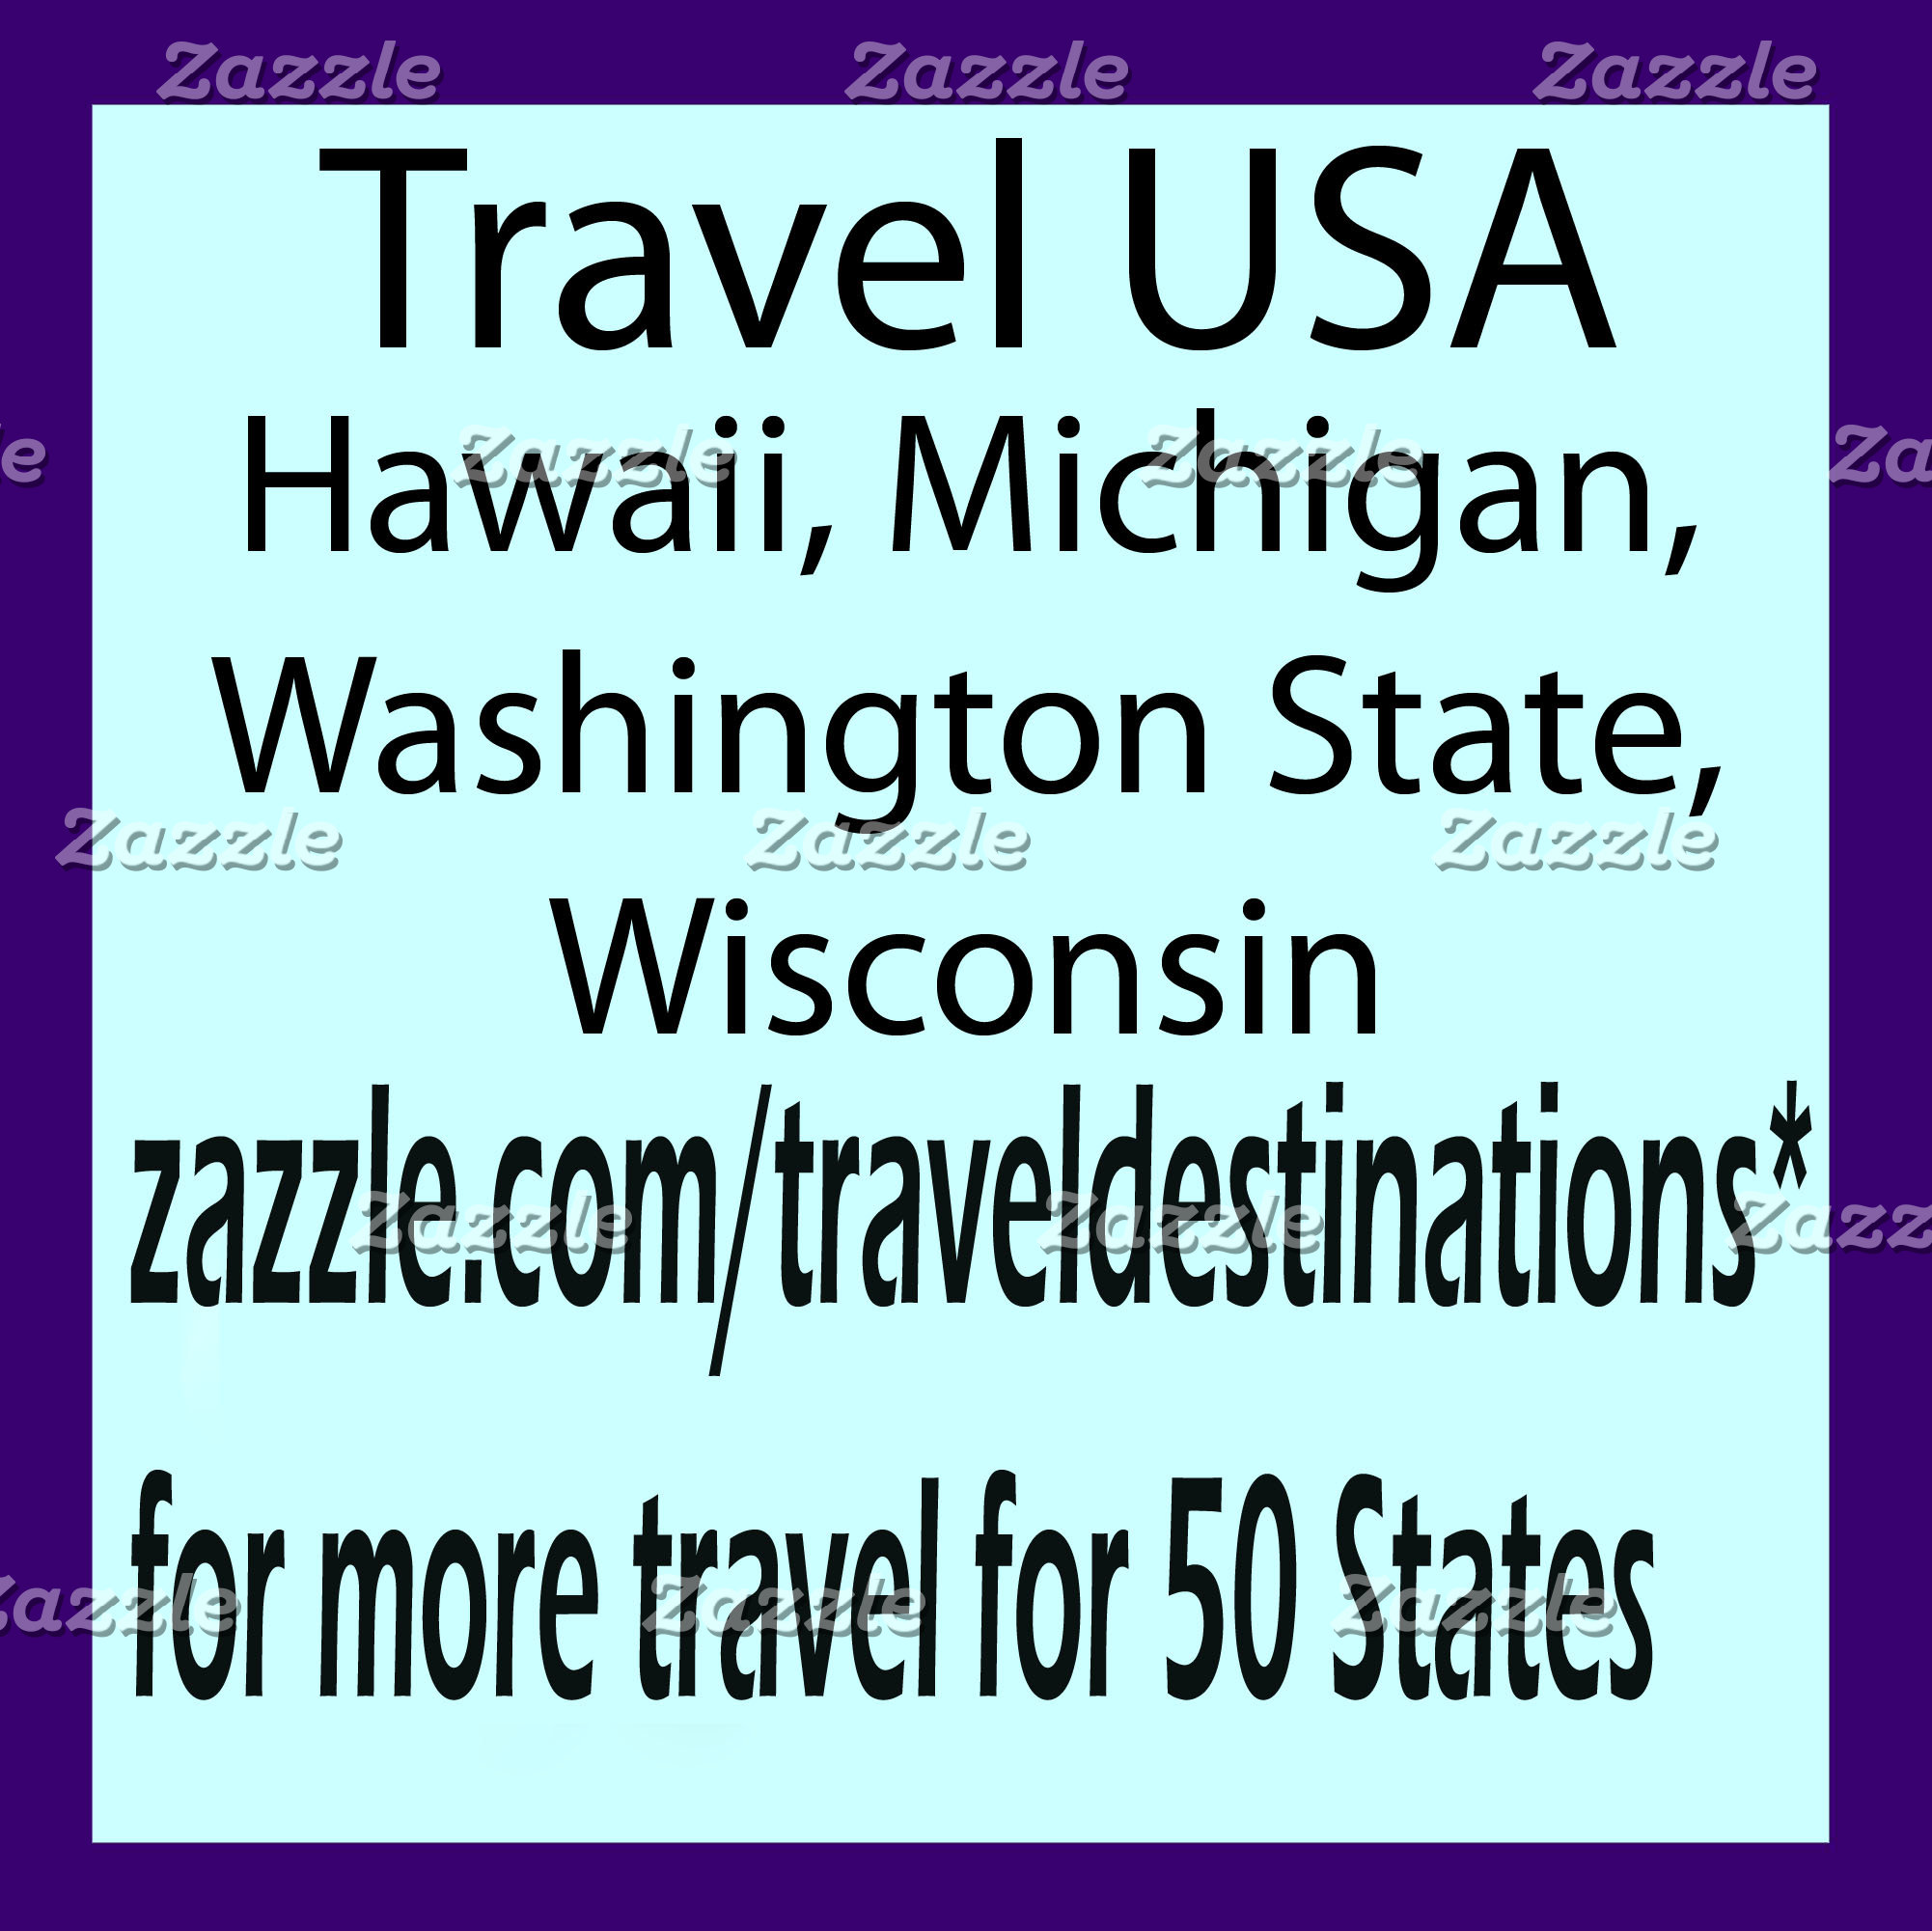 Travel USA - MI, HI, WI, WA